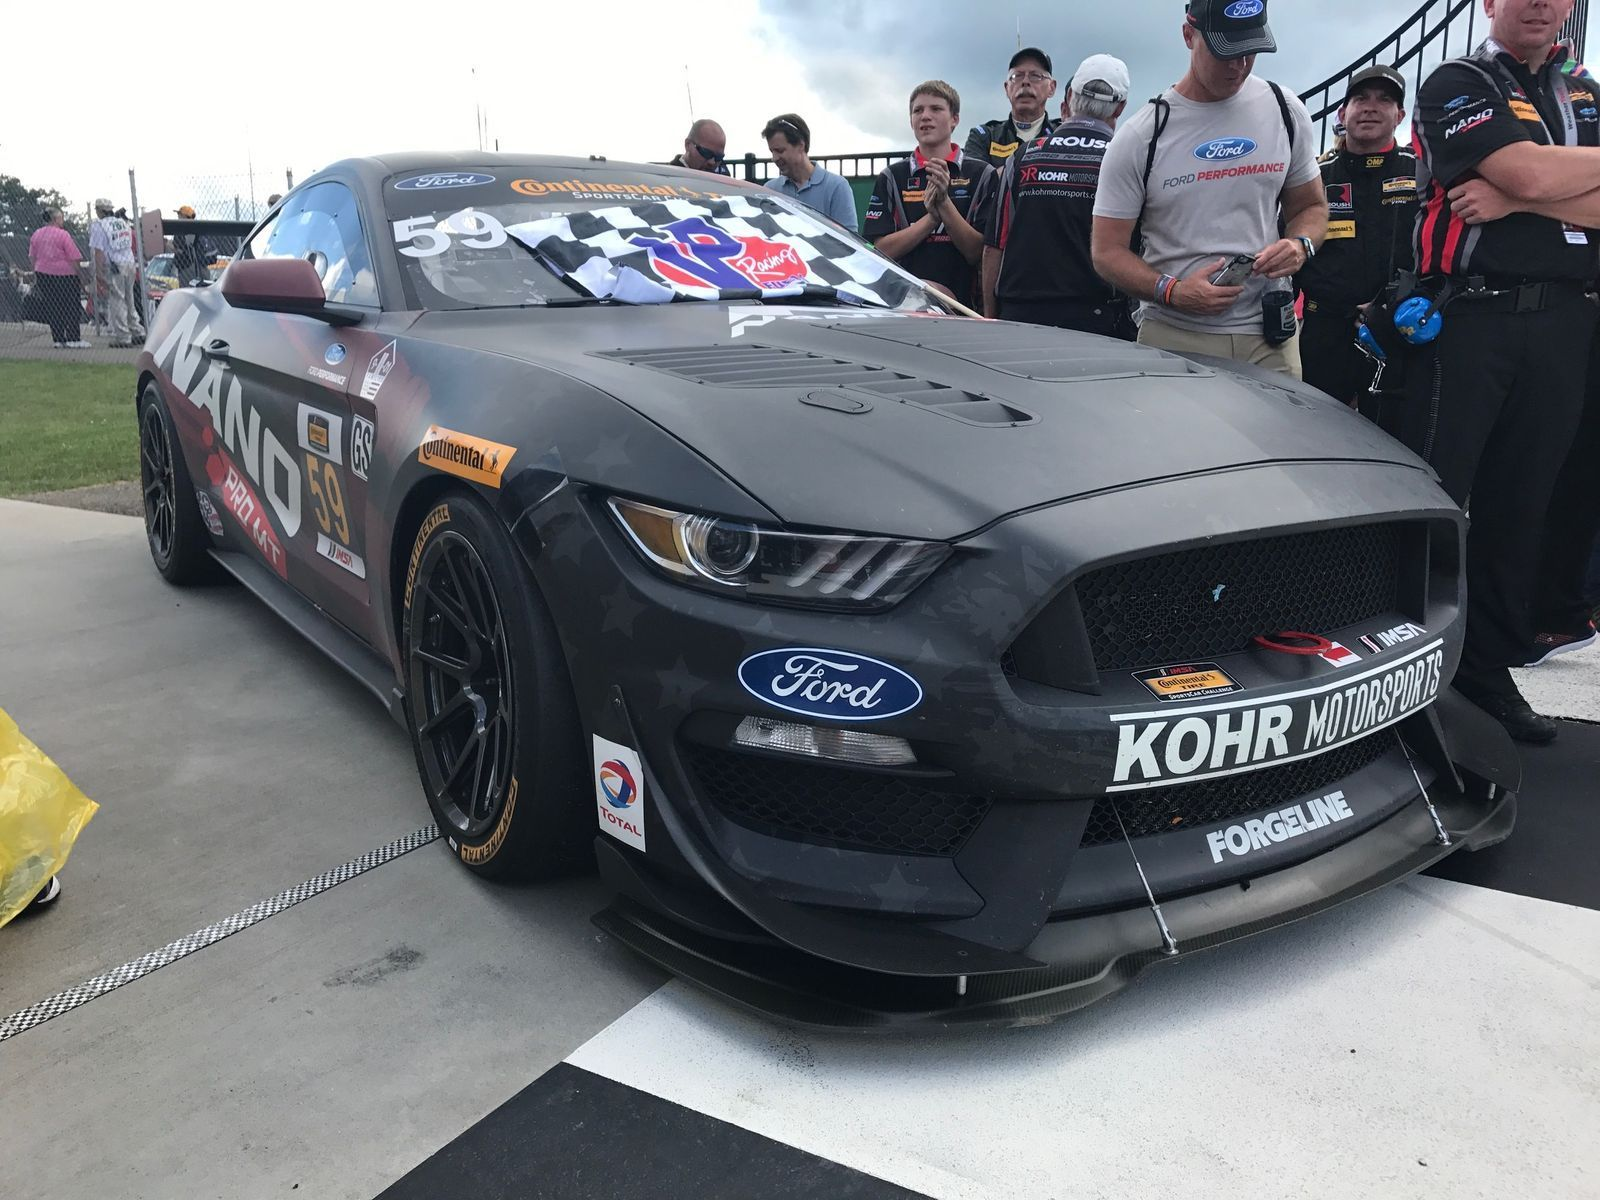 2017 Ford Mustang | Kohr Motorsports Mustang GT4 Wins at Watkins Glen on Forgeline One Piece Forged Monoblock GS1R Wheels